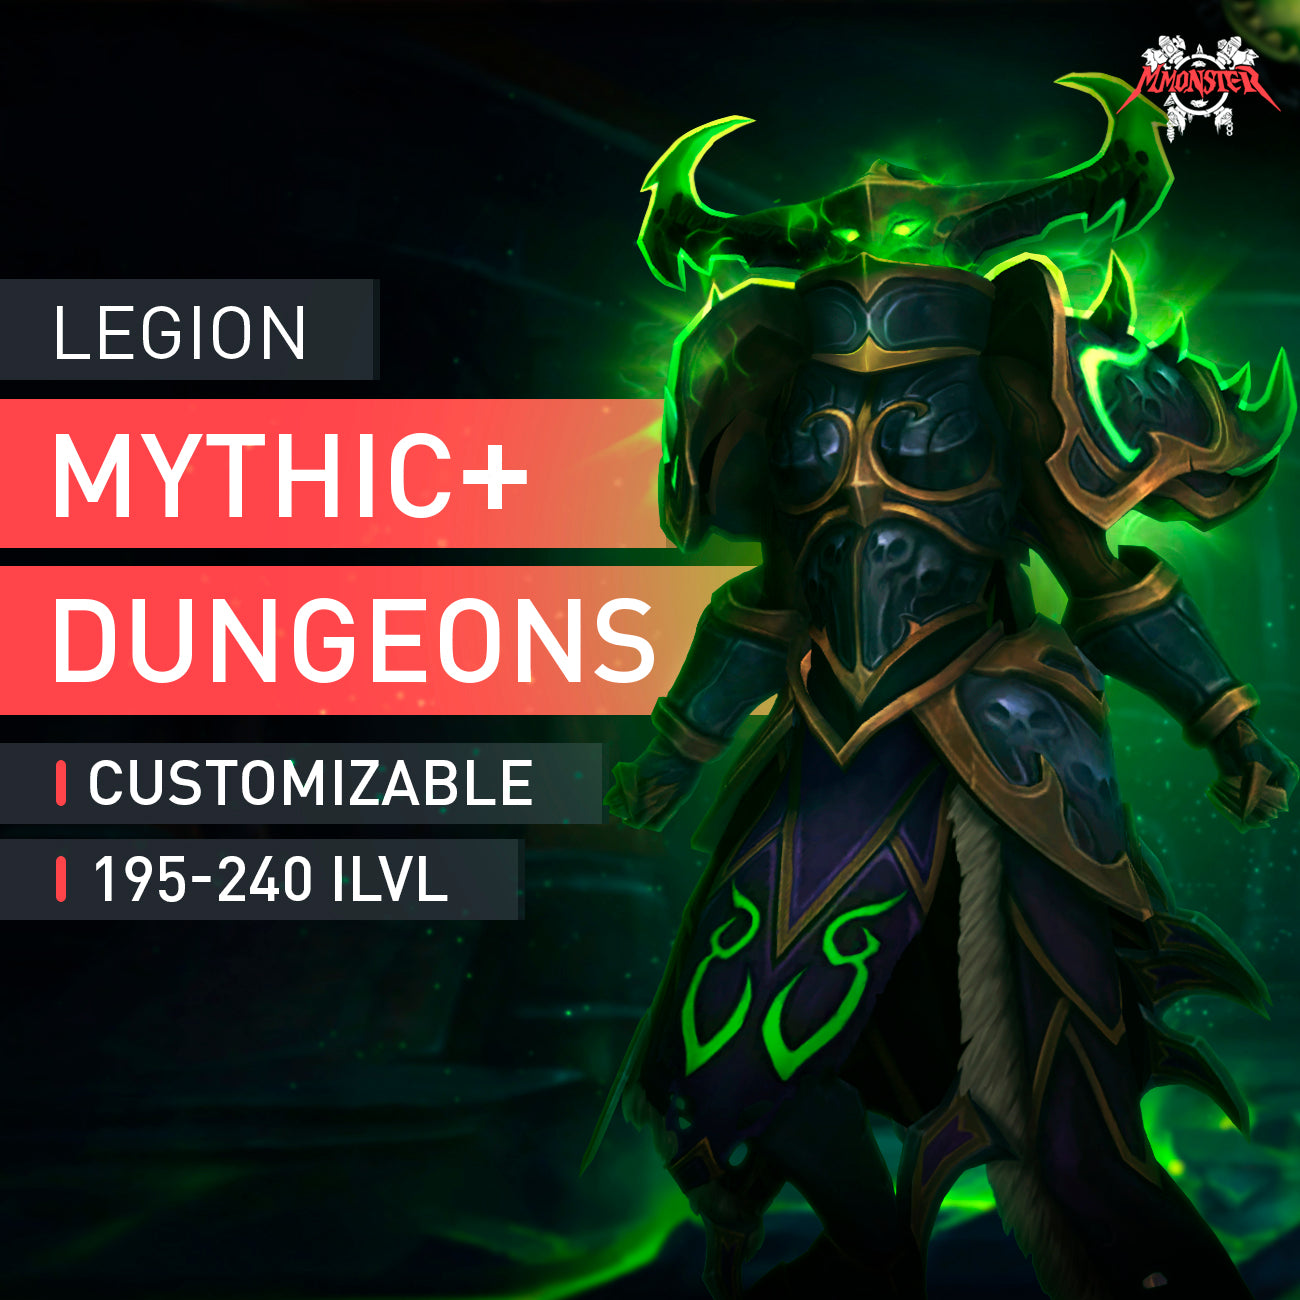 Legion Mythic+ Dungeons Run - MMonster